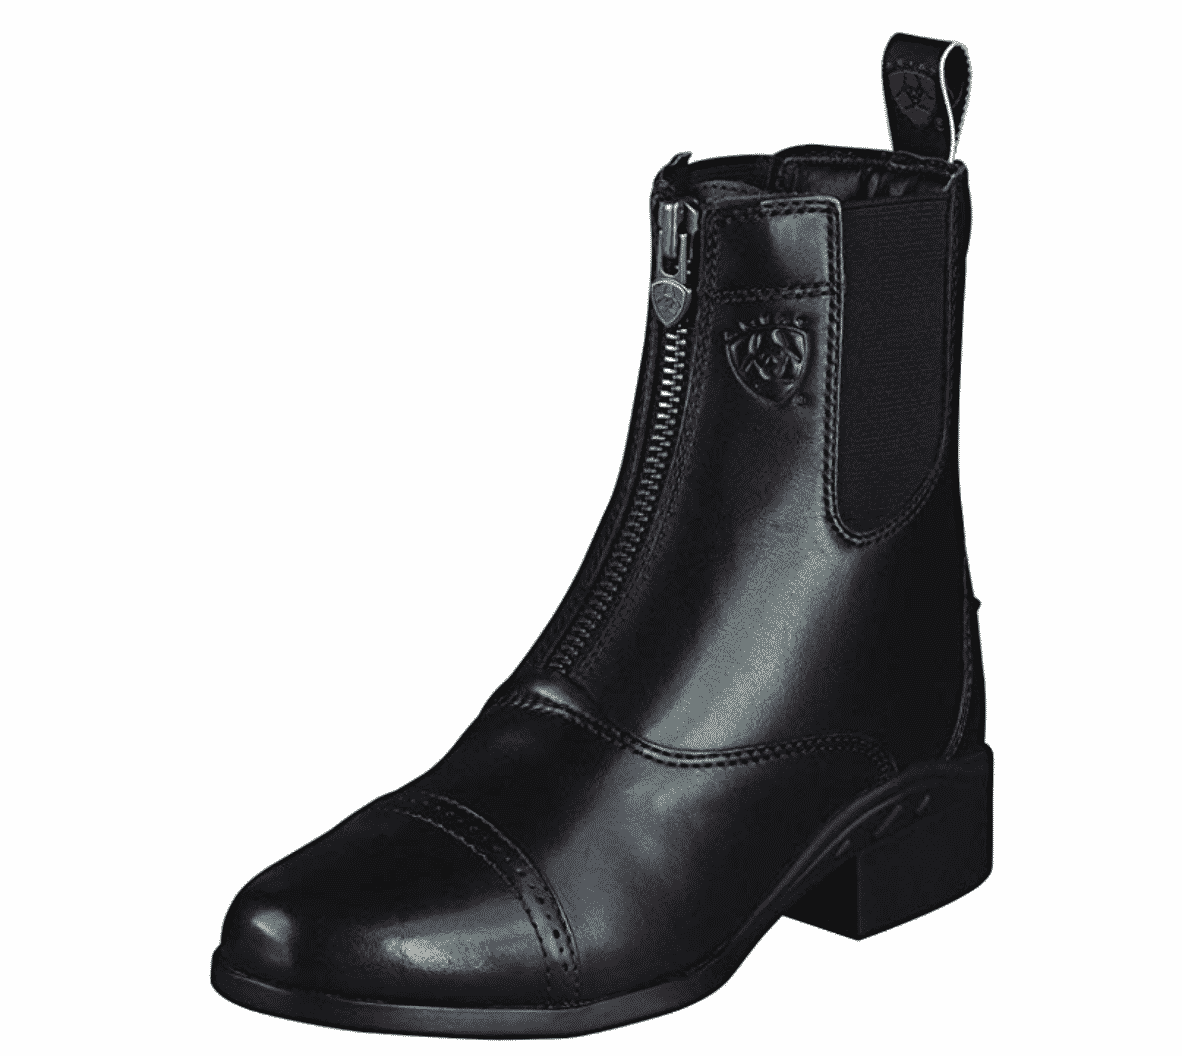 Ariat Womens Riding Boots - Heritage Zipper Paddock Boots